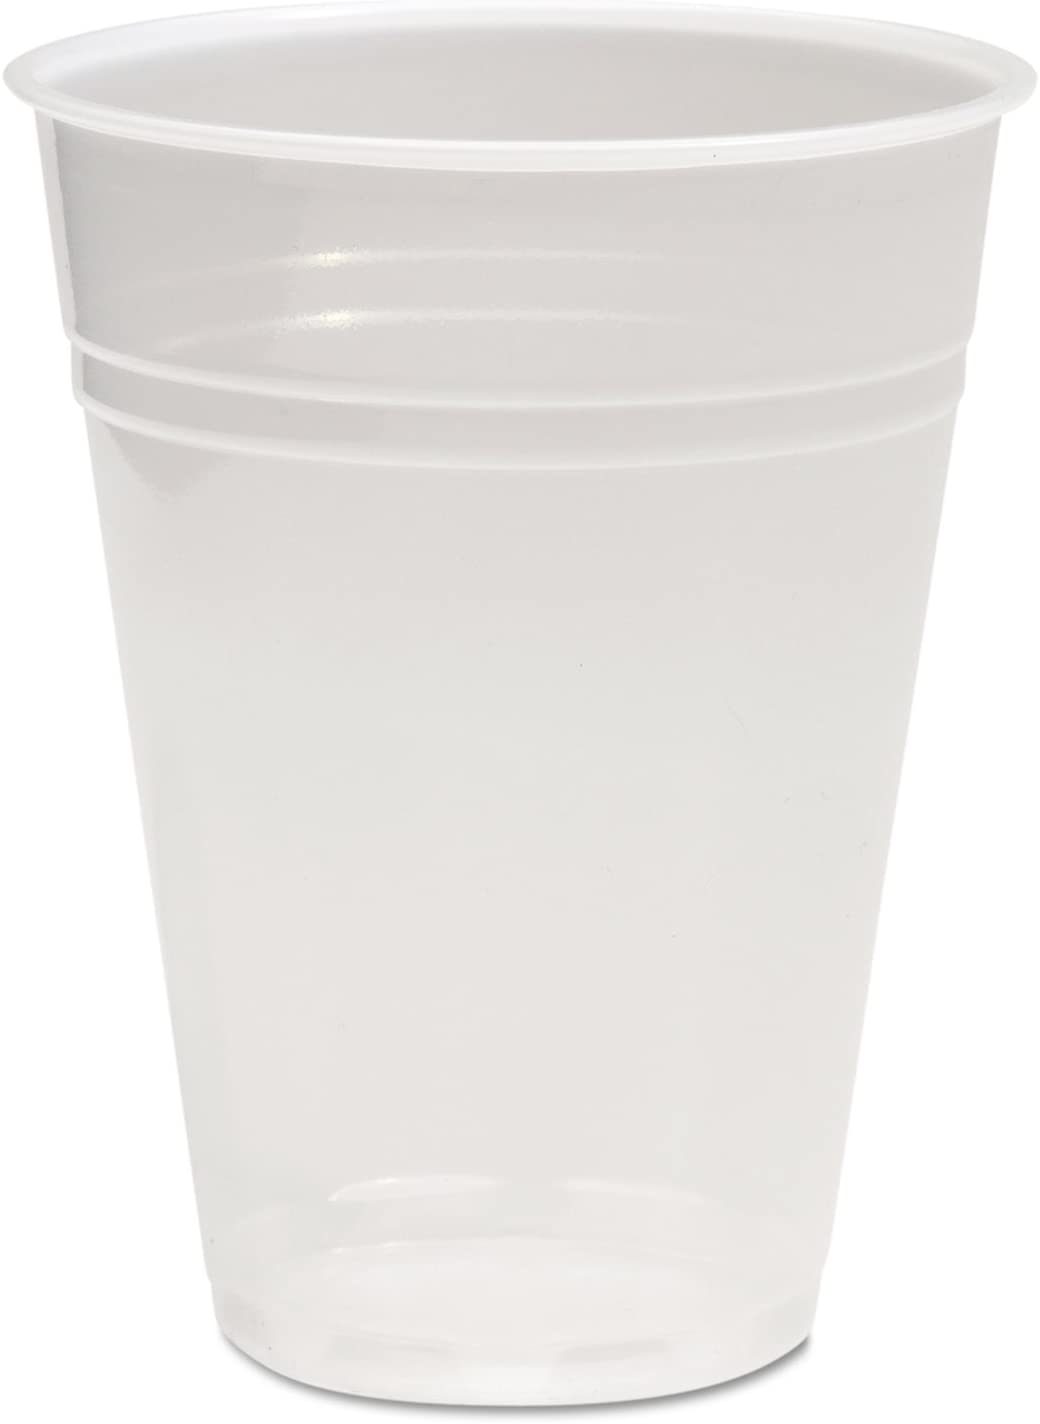 Boardwalk Translucent Plastic Cold Cups, 9oz, 100/Bag, 25 Bags/Carton